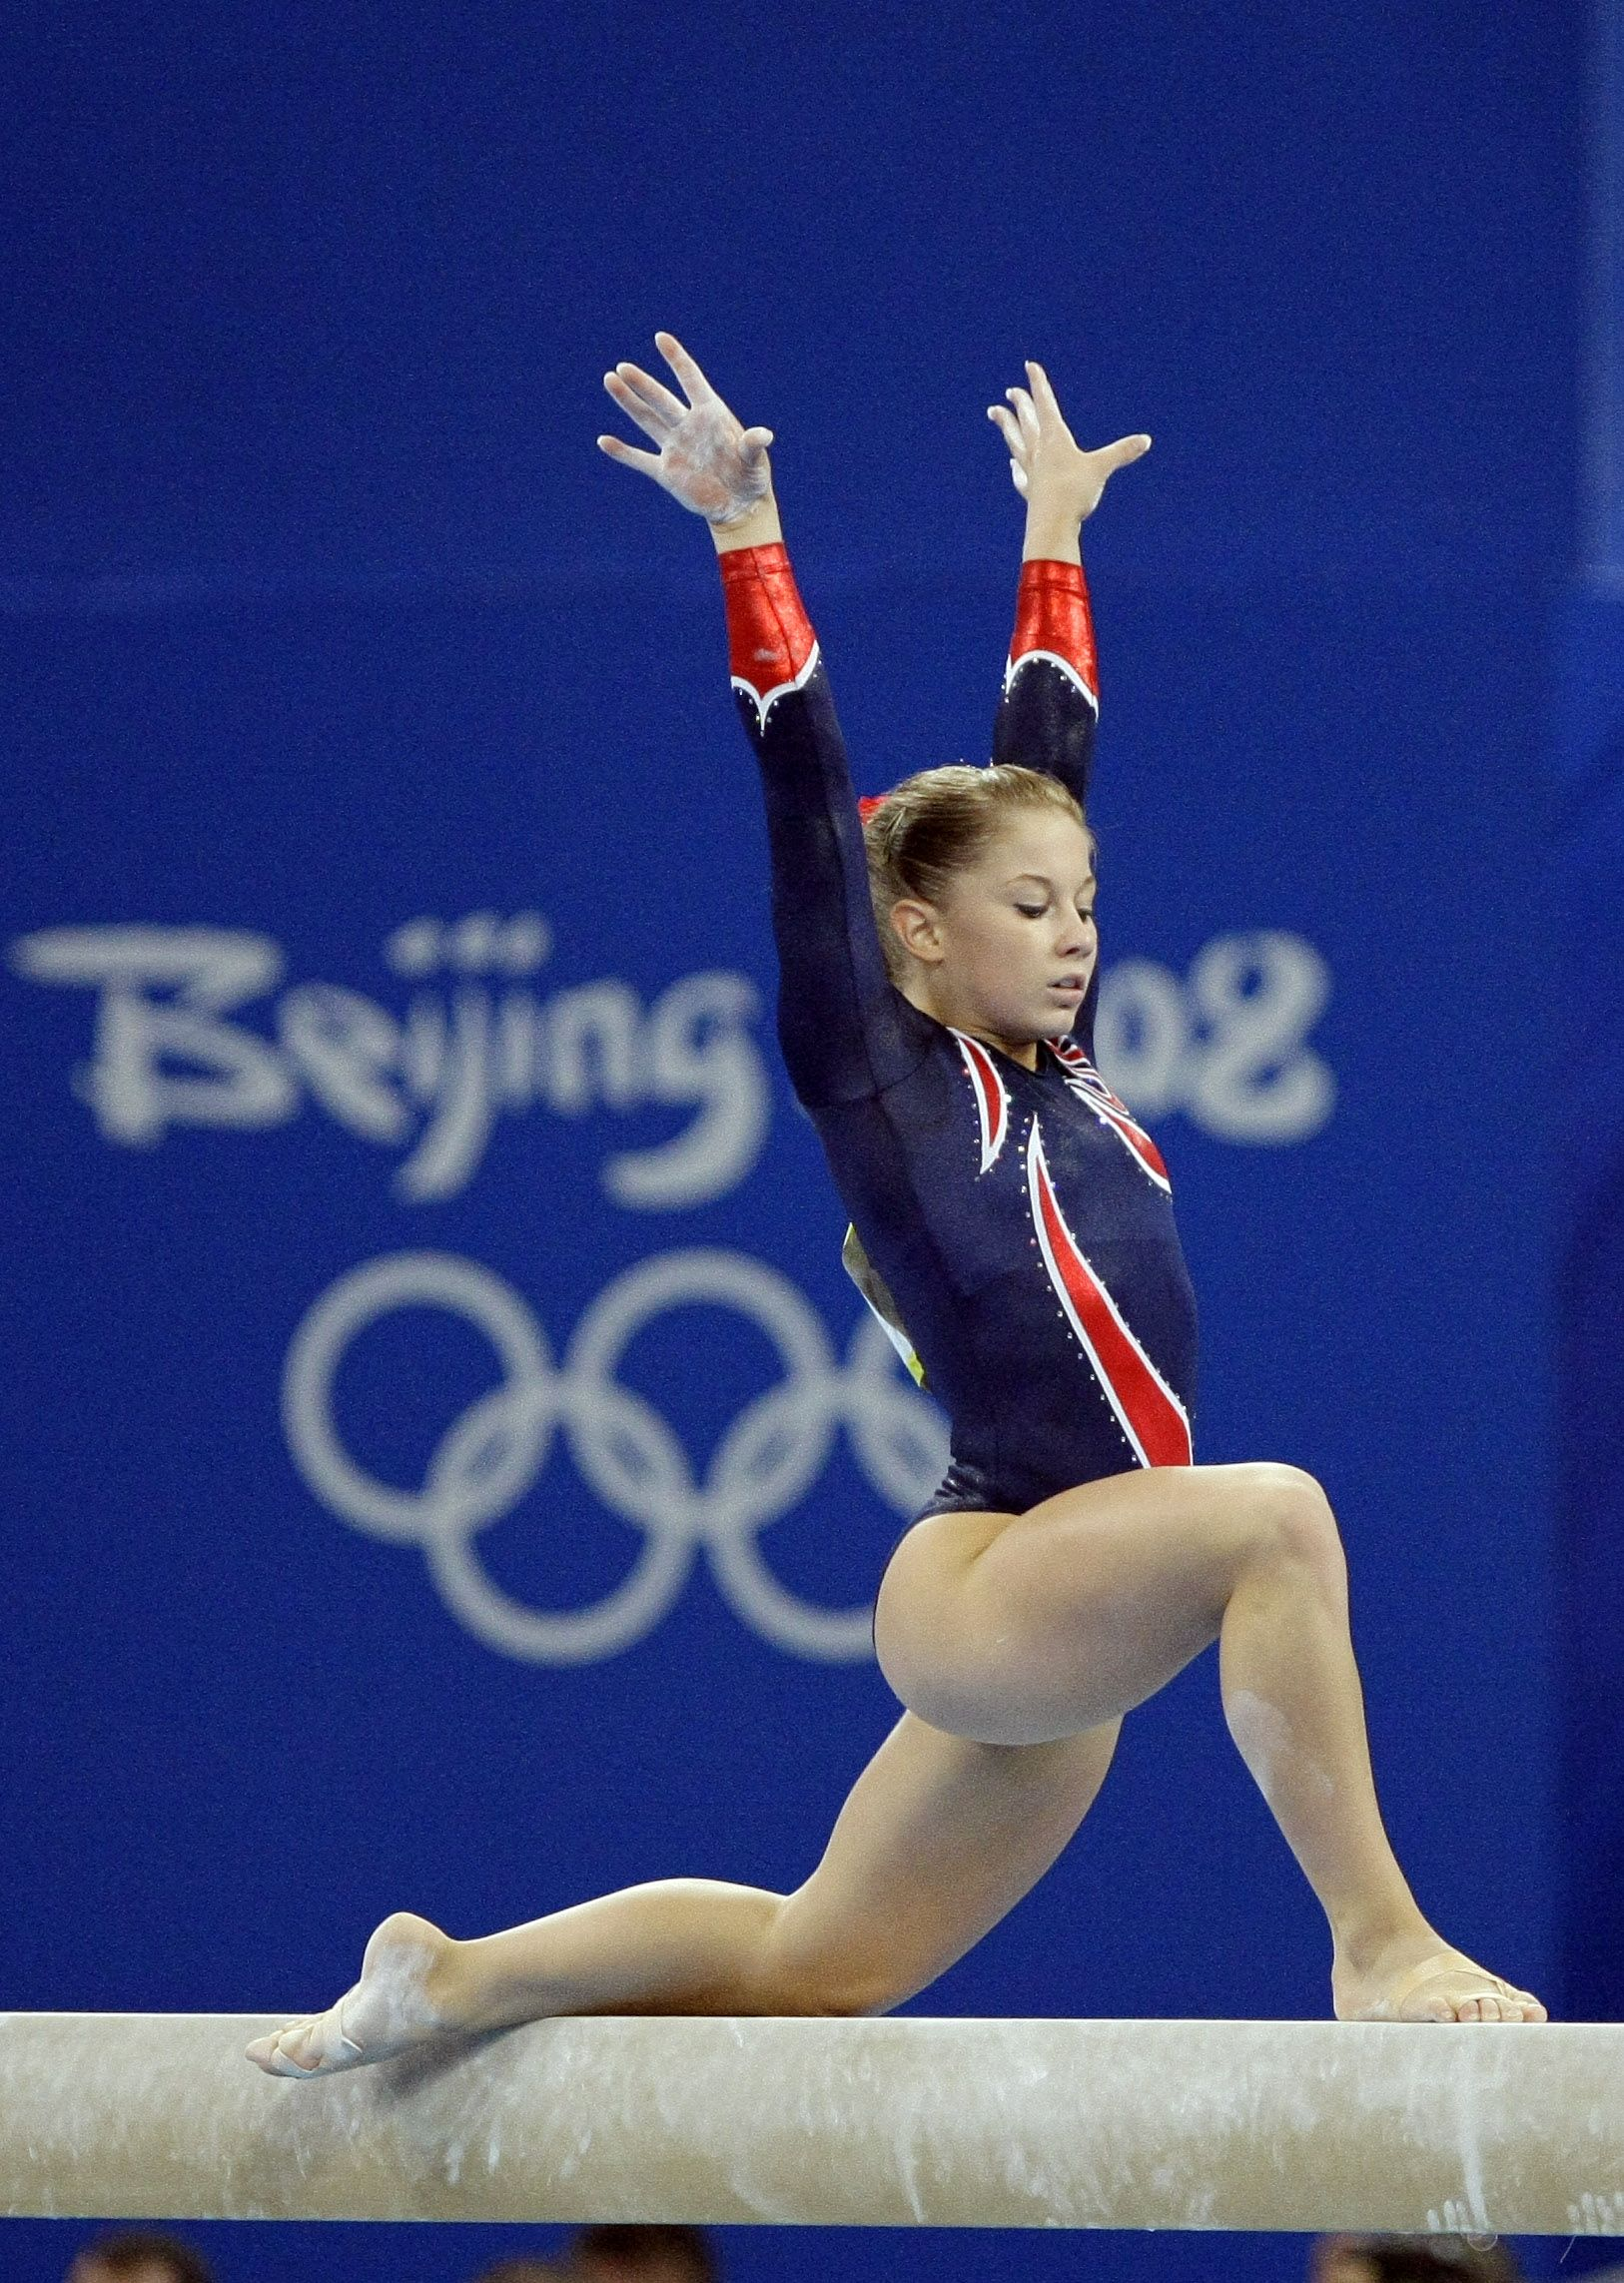 Image forward roll jpg gymnastics wiki - Gymnast Shawn Johnson Performs On The Balance Beam During The Gymnastics Apparatus Finals At The Beijing 2008 Olympics In Beijing Tuesday Aug